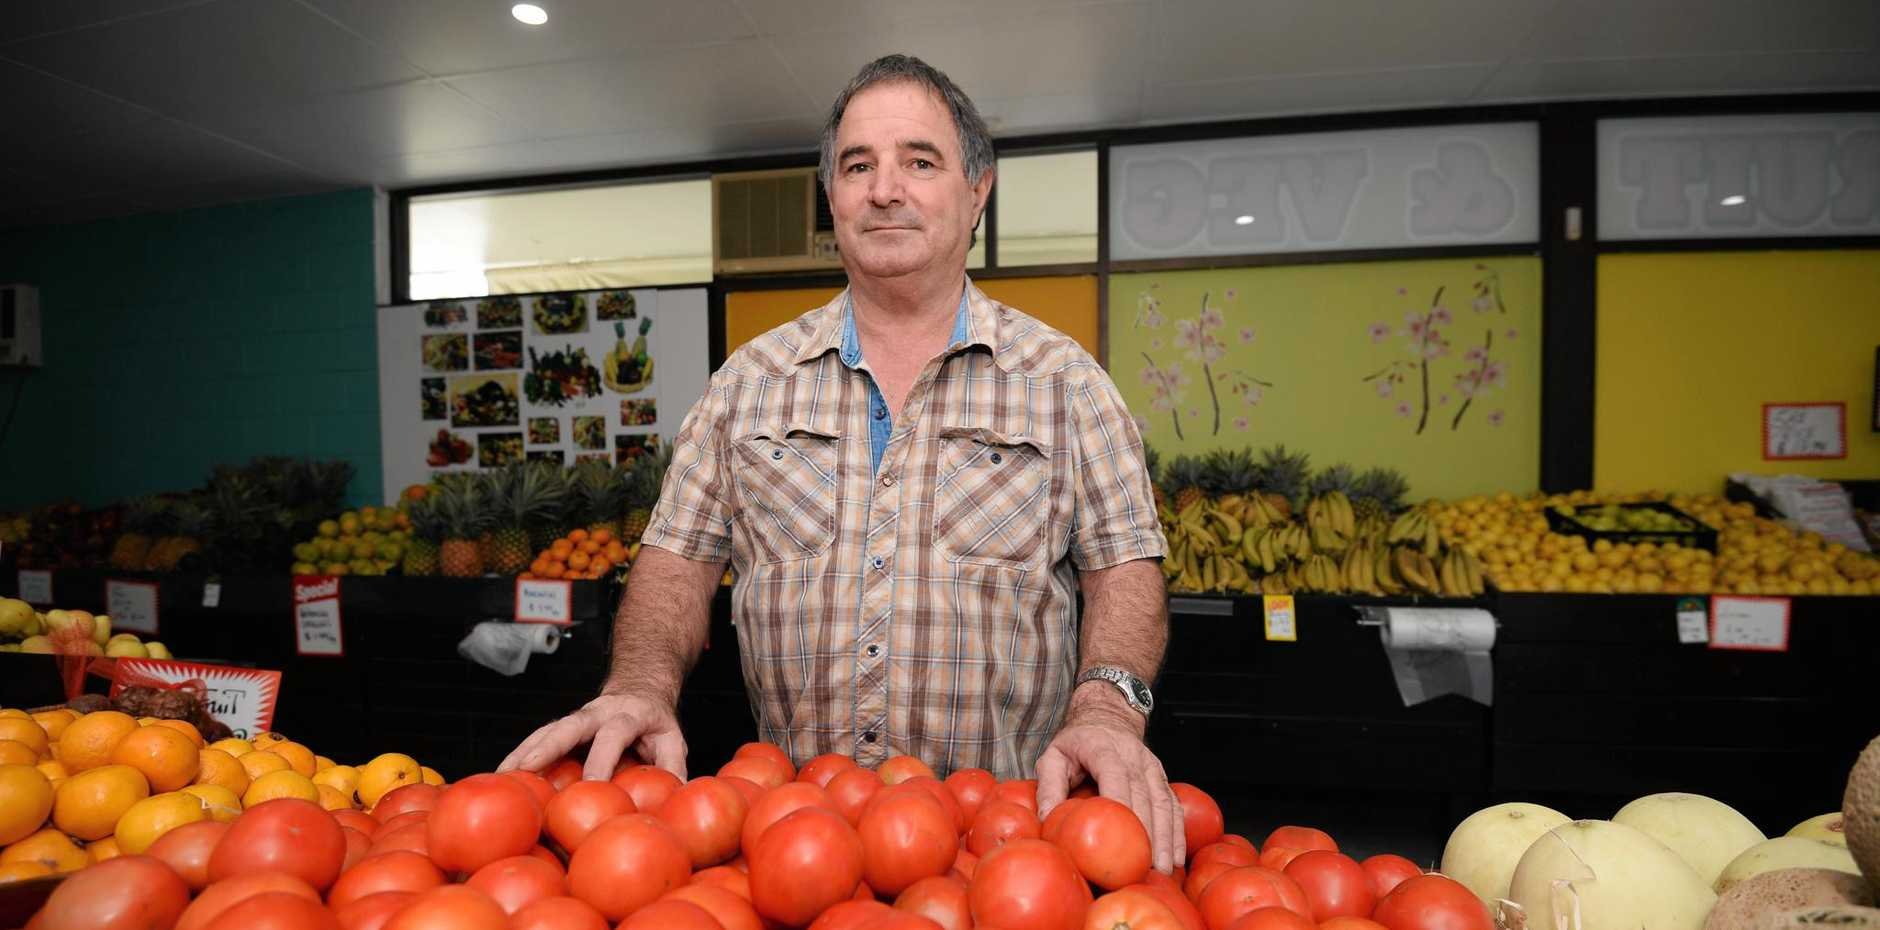 Owner of Dean St Fruit and Veg, Stephen Irvine said the price of tomatoes has doubled in the past two weeks.